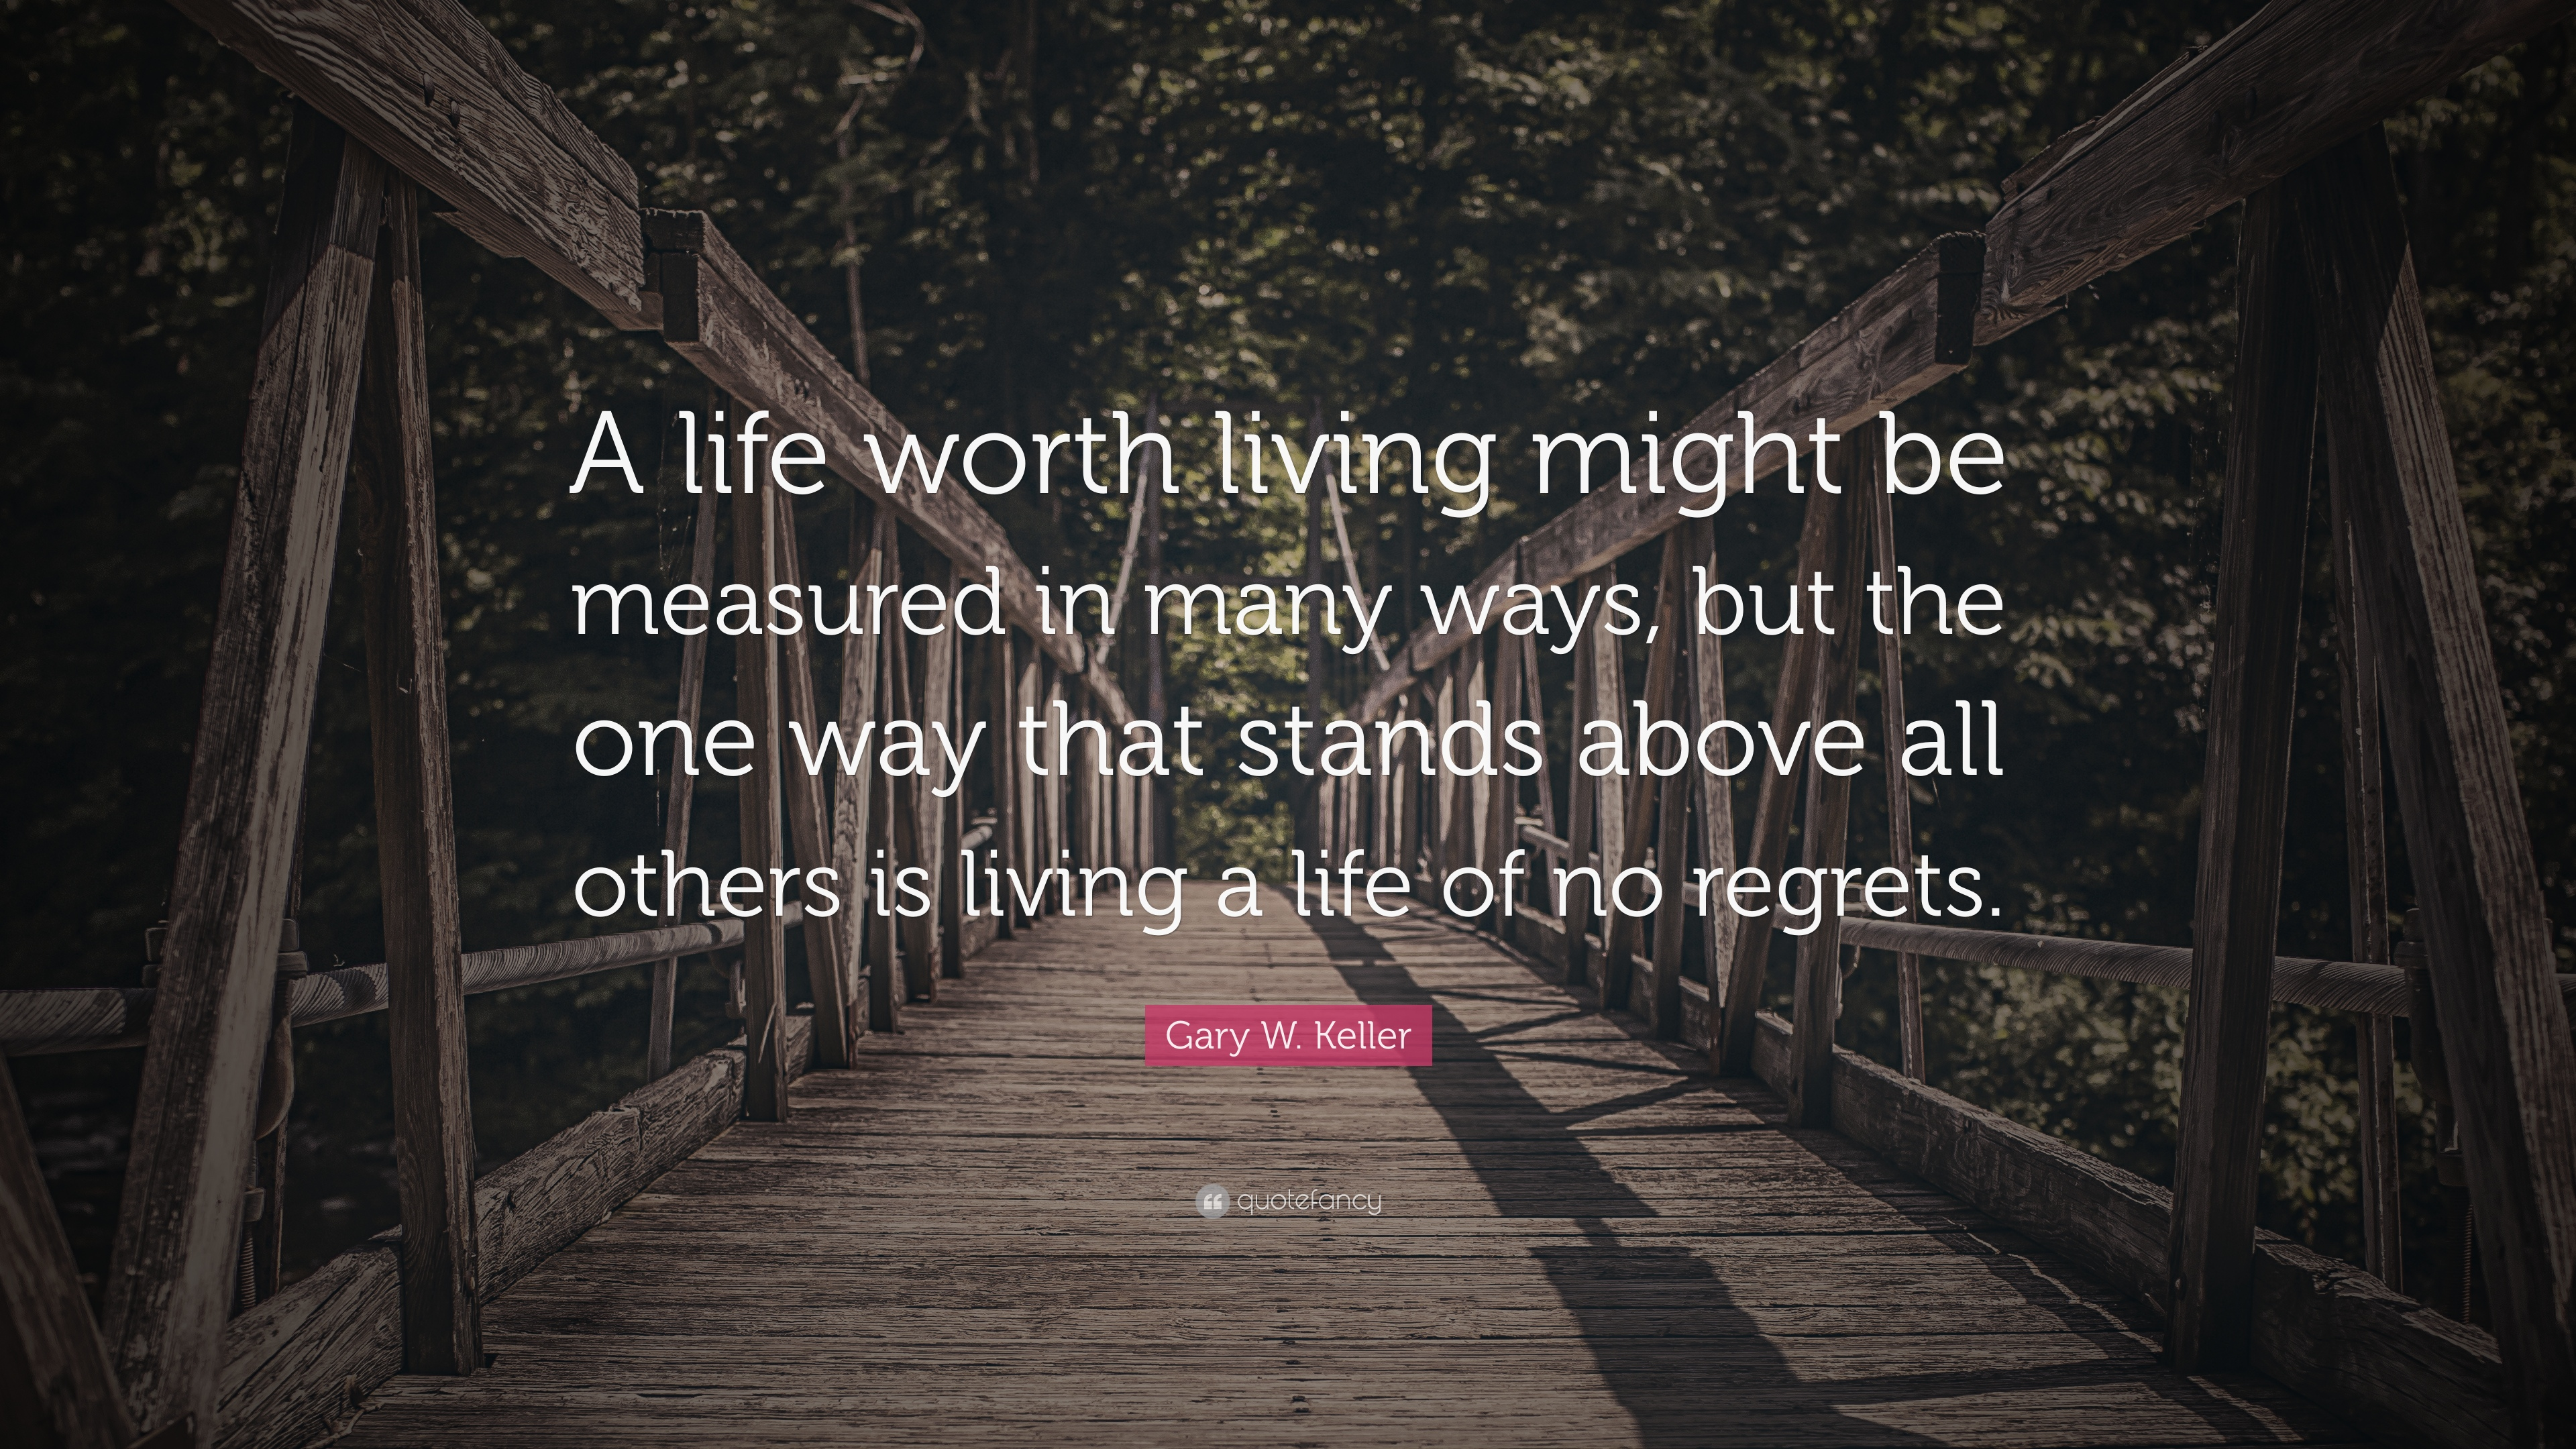 Gary W Keller Quote A Life Worth Living Might Be Measured In Many